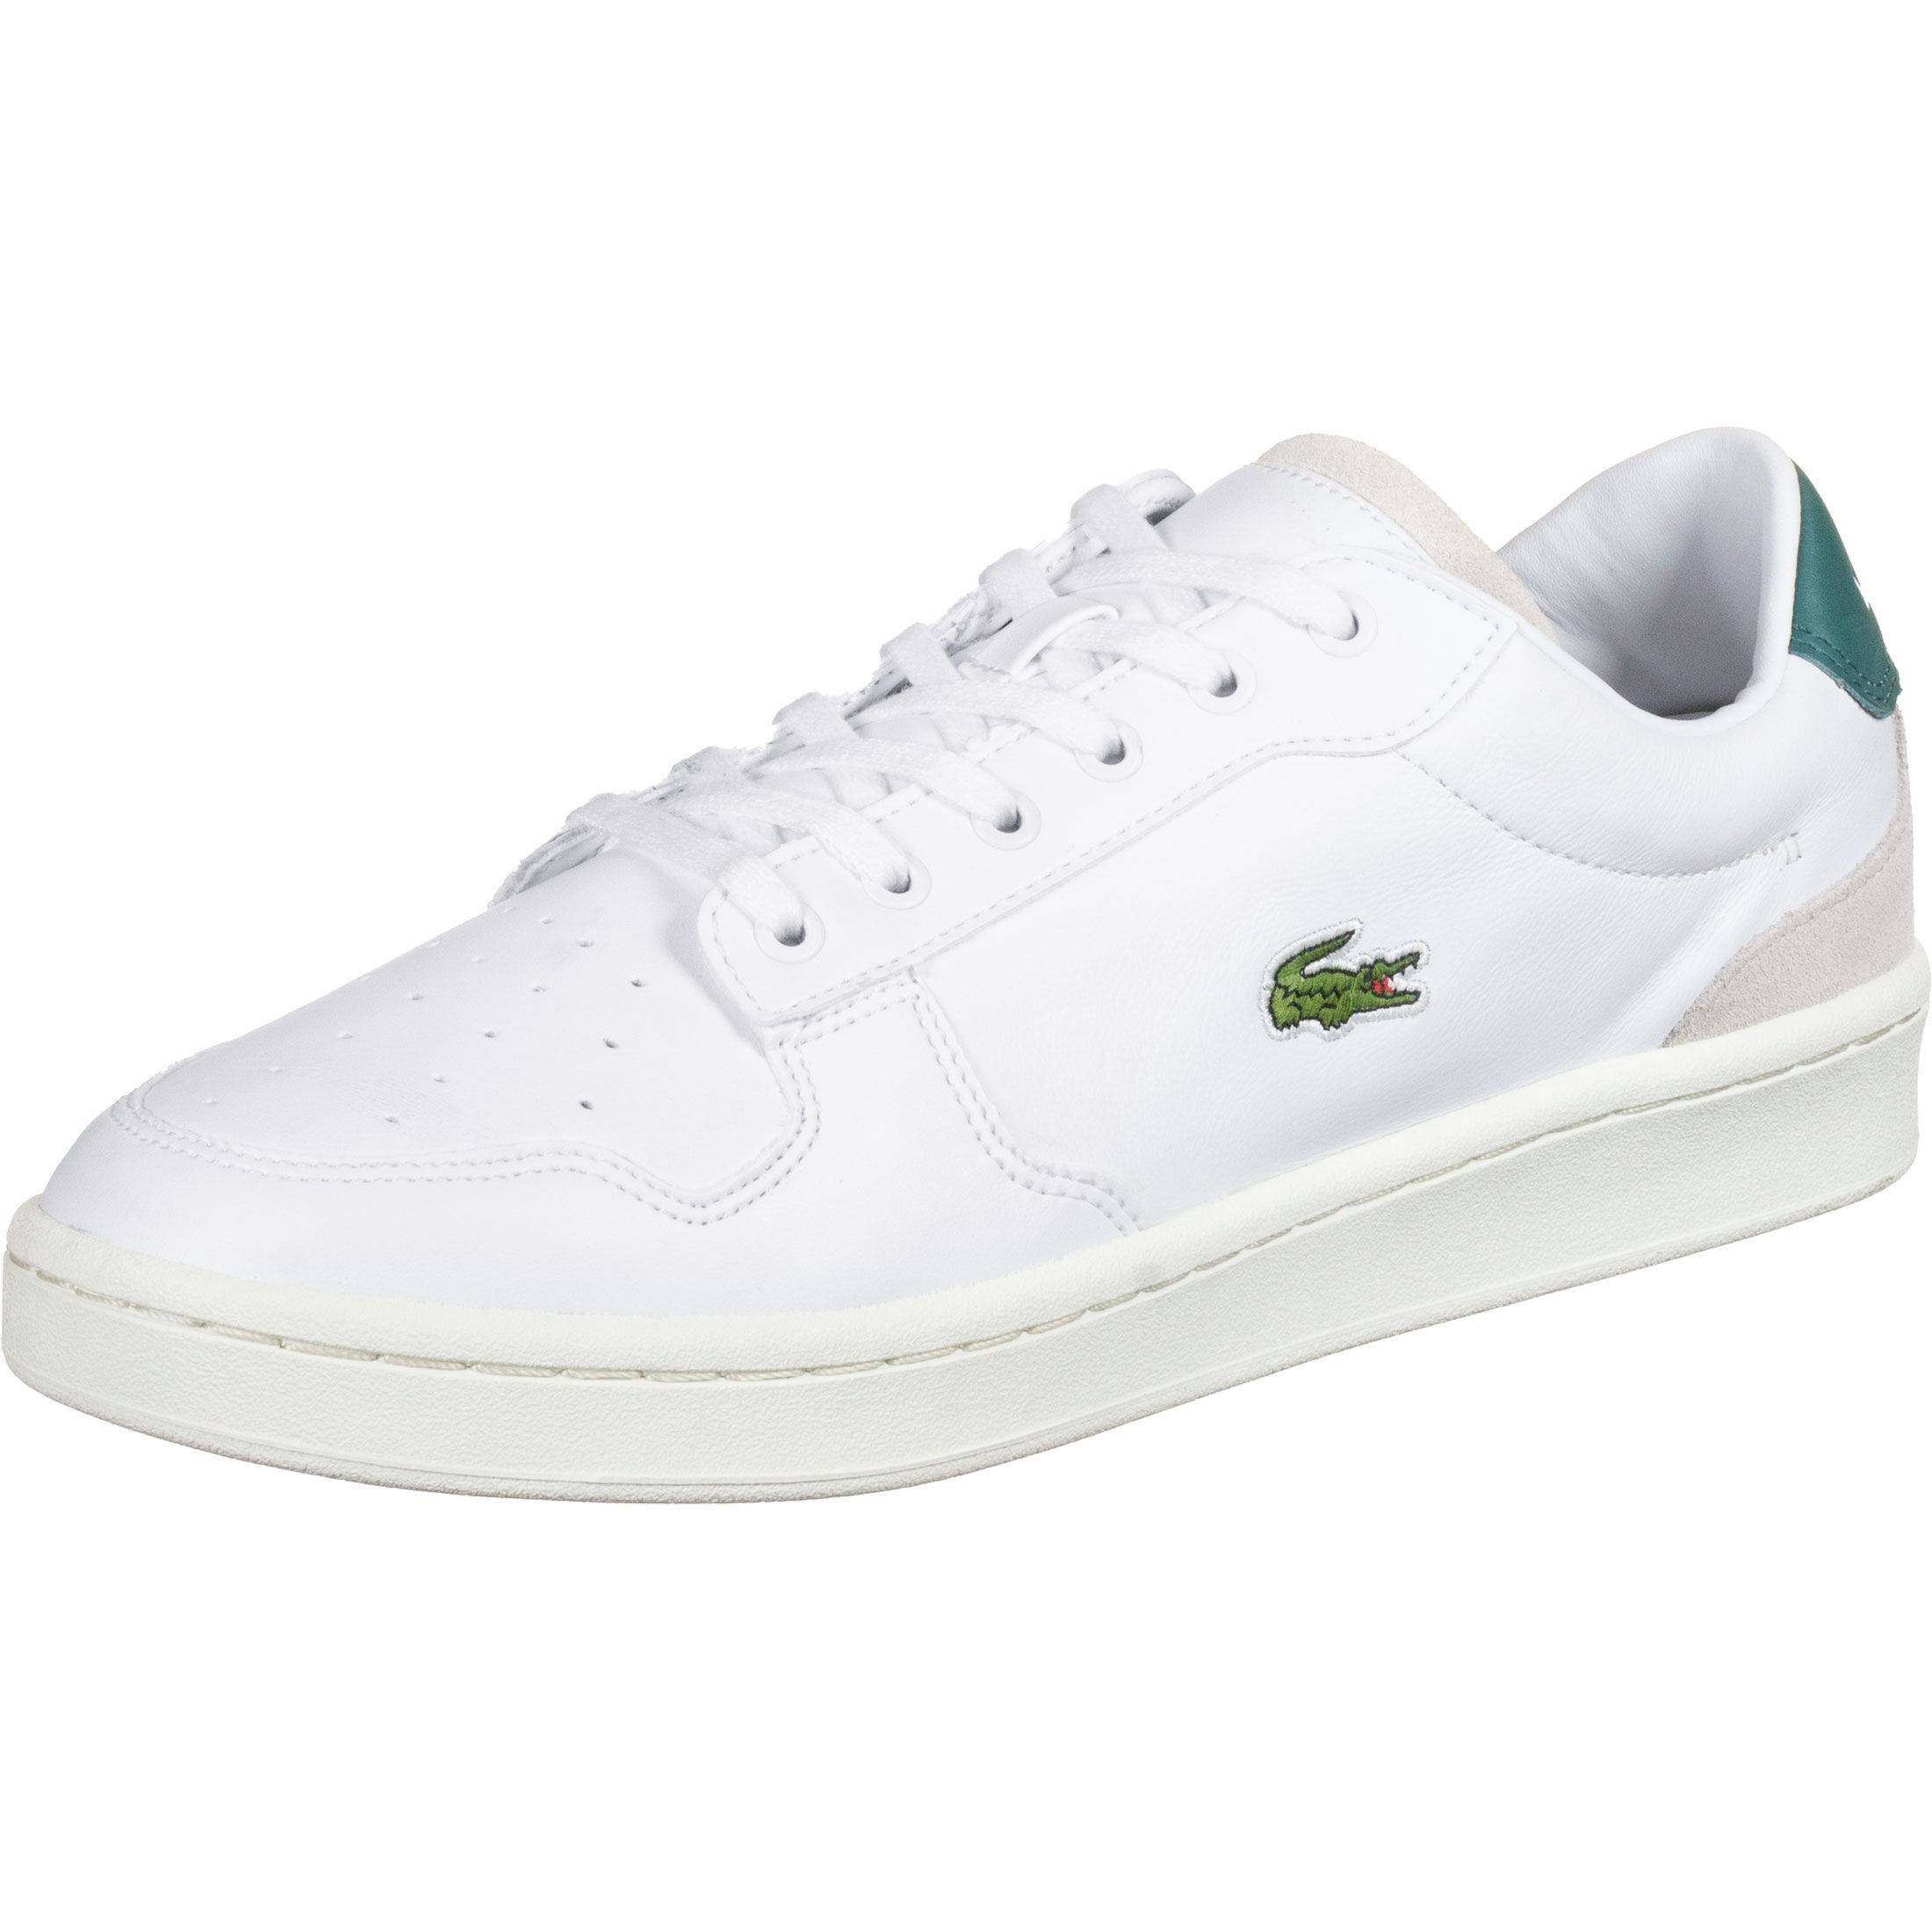 Lacoste Masters Cup, 47 EU, homme, blanc